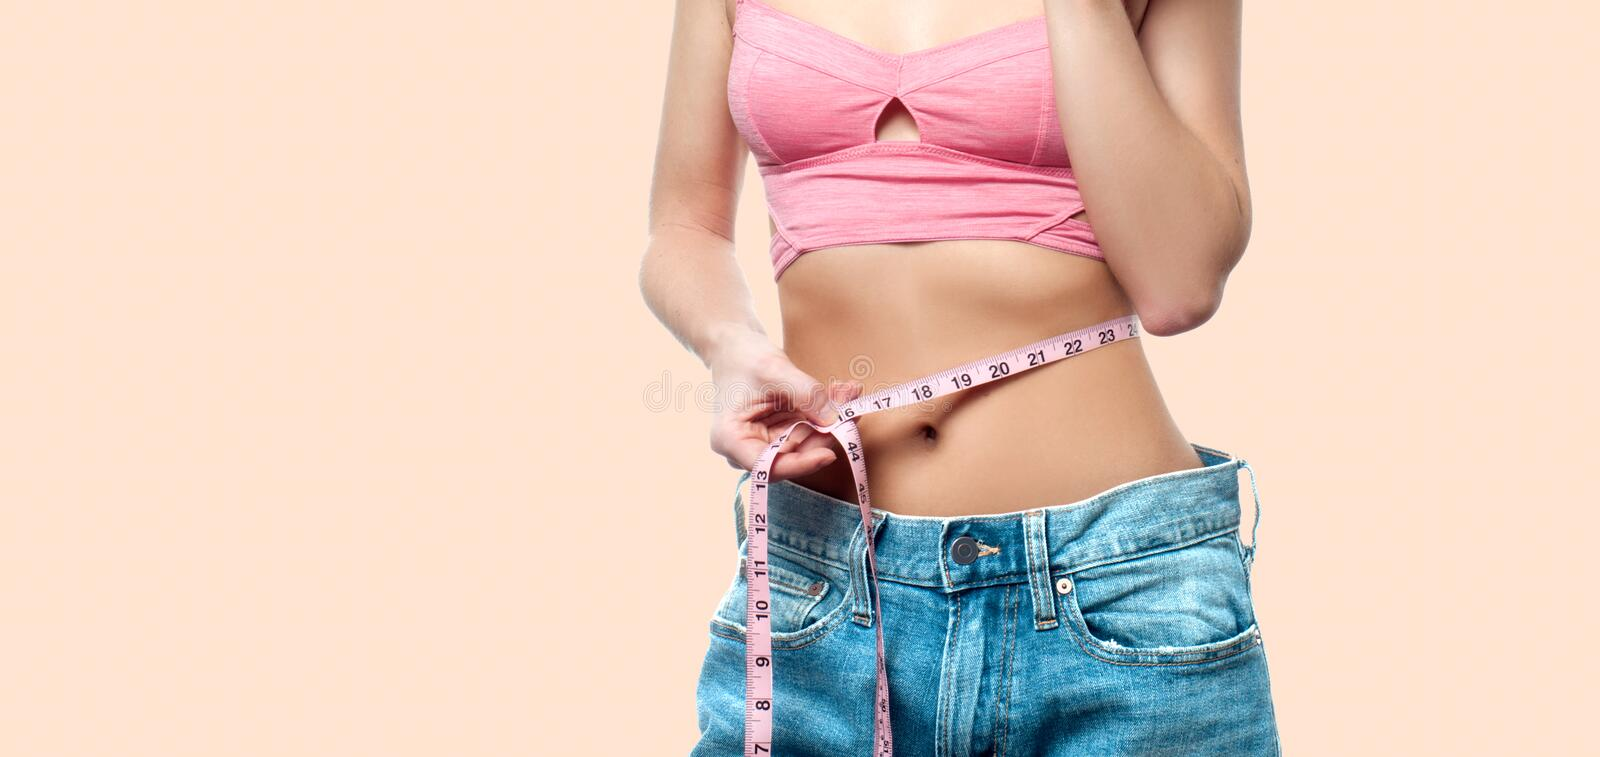 Woman is measuring waist after weight loss on faded pastel background. Diet concept. Woman is measuring waist after weight loss on faded pastel background stock images